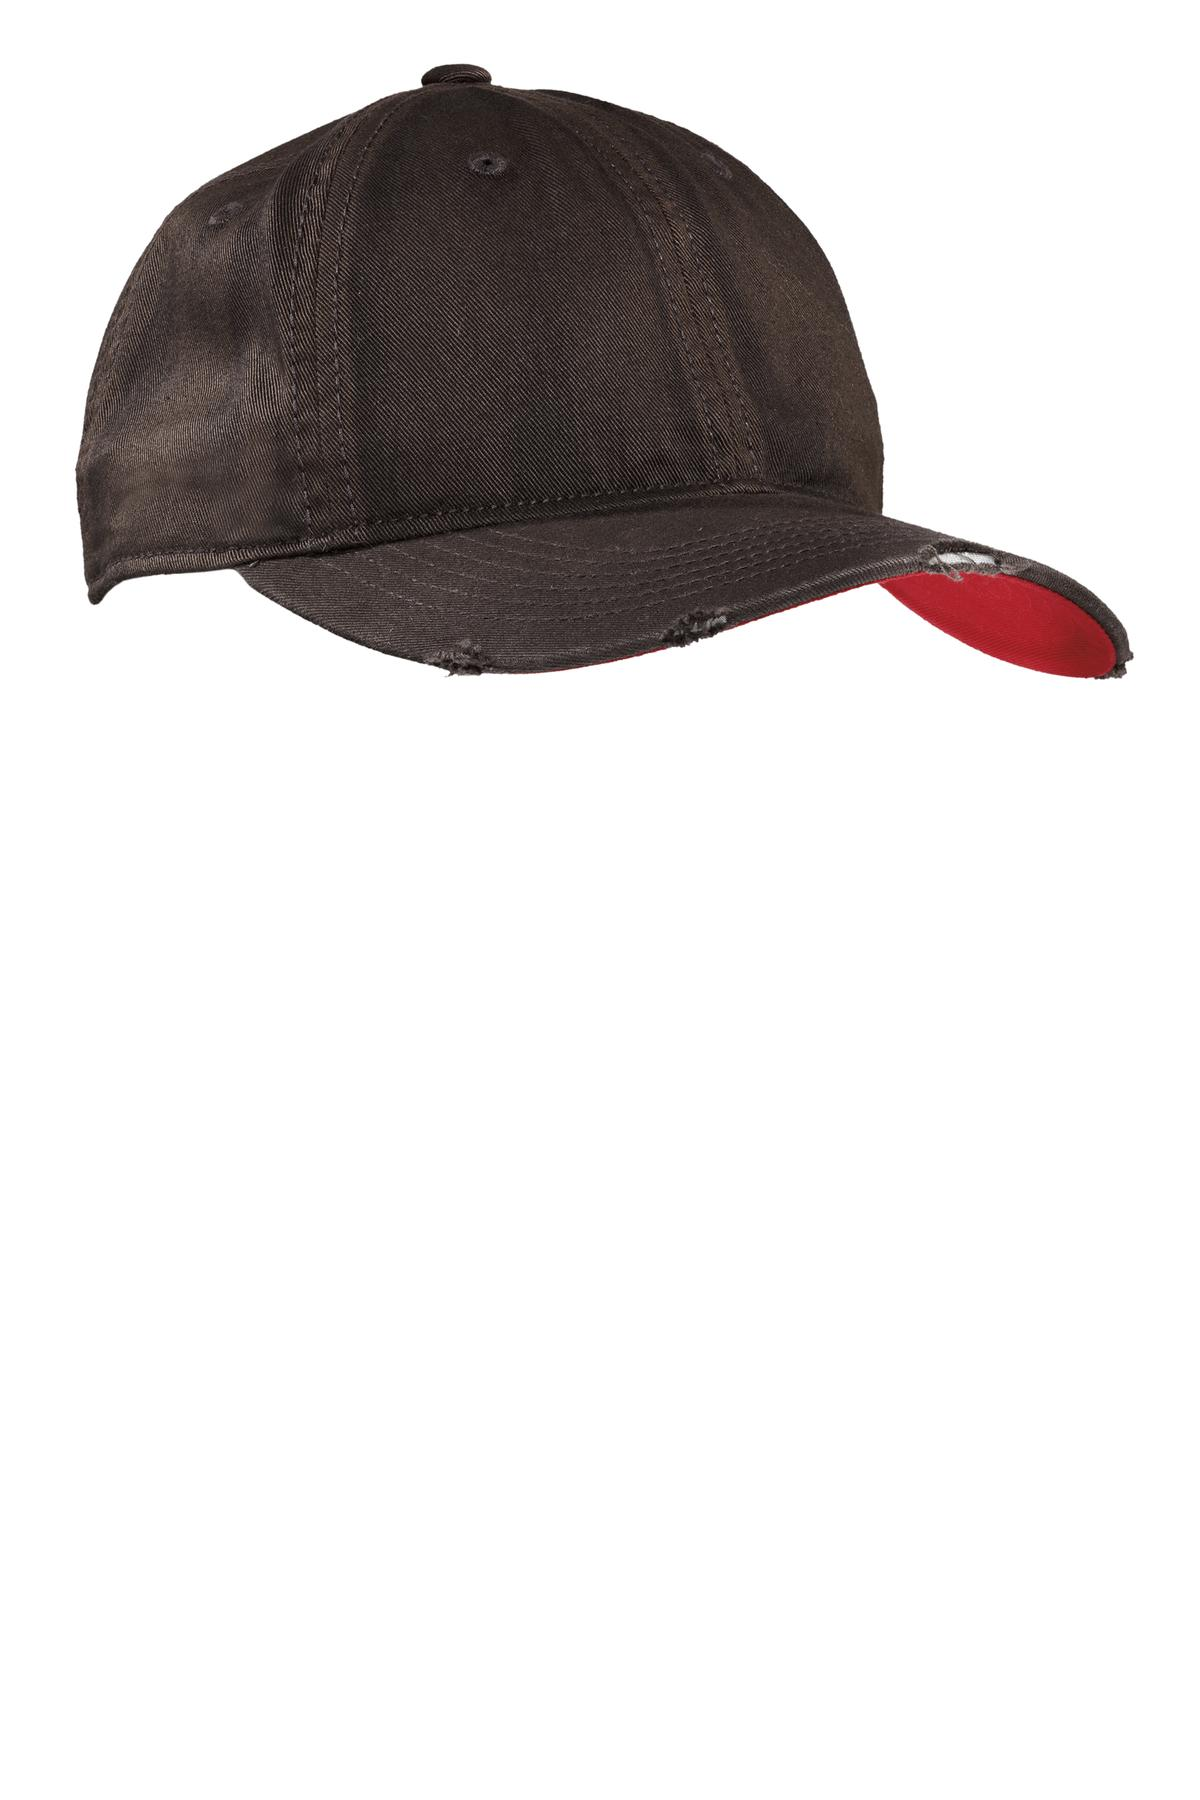 CLOSEOUT District - Sun Bleached and Distressed Cap. DT615